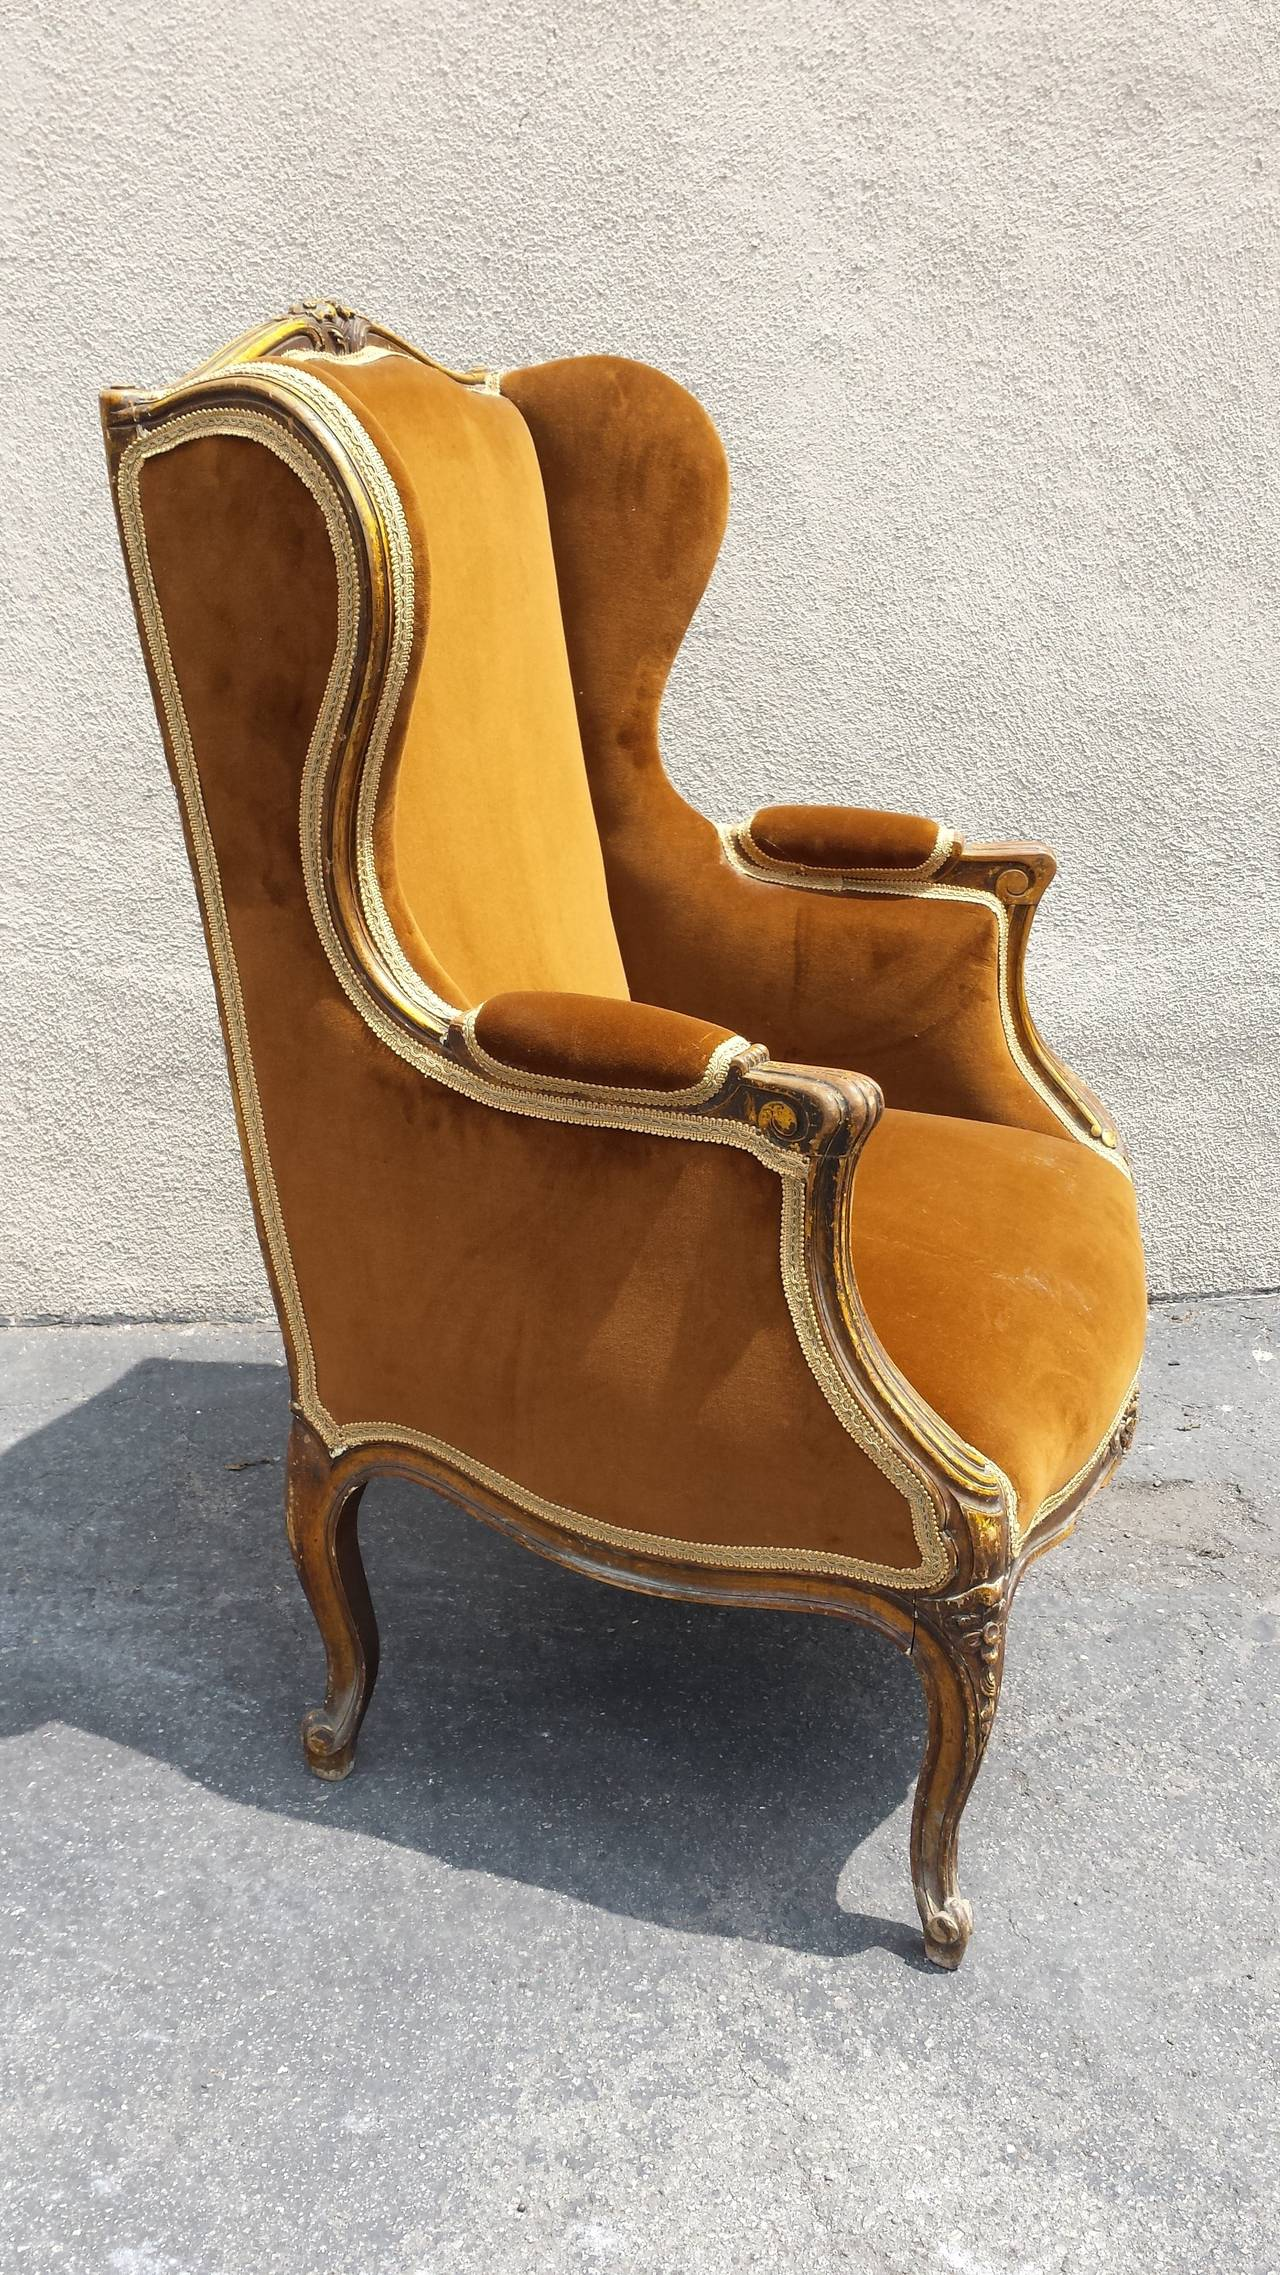 bergere chairs for sale t4 spa chair manual french louis xv style armchair